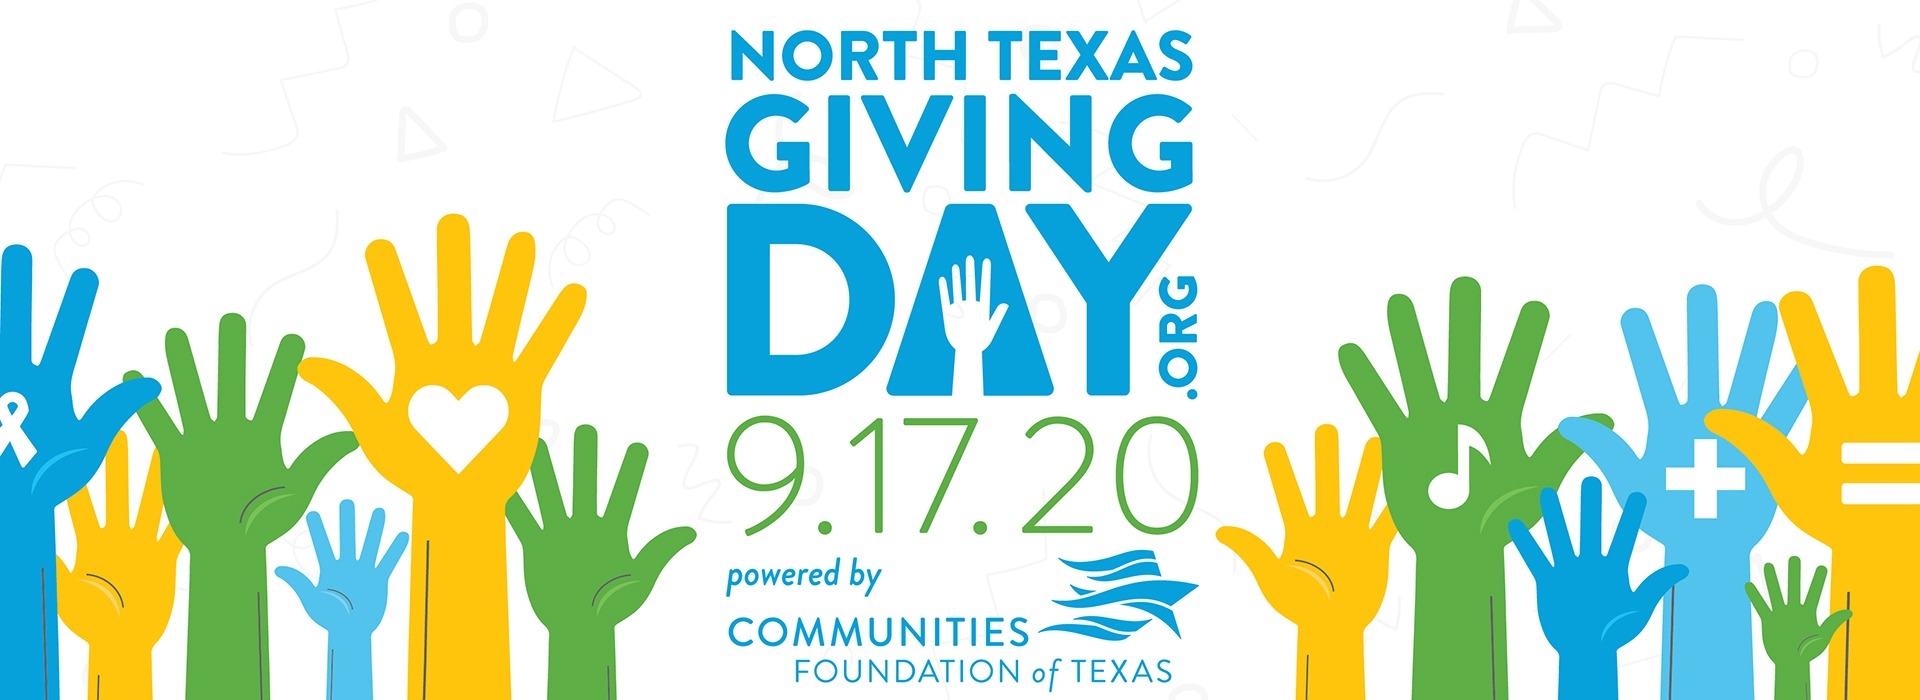 NT Giving Day